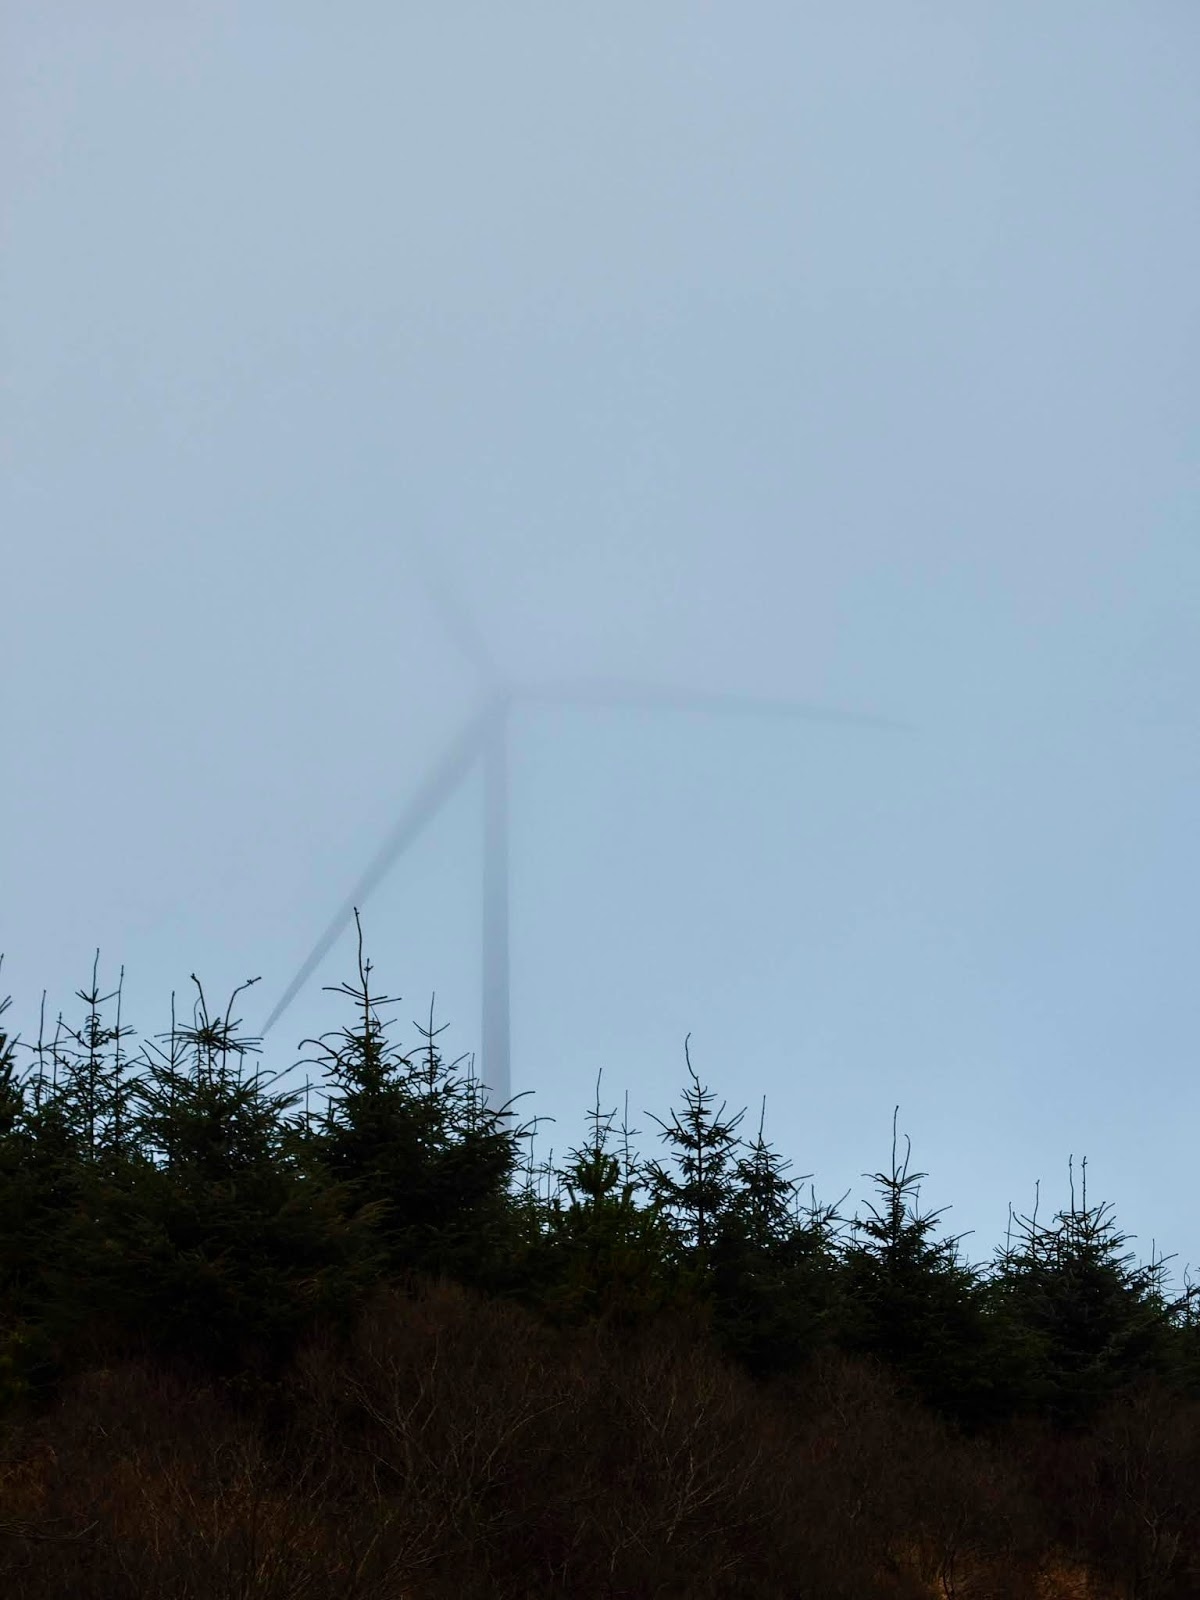 Top of the windmill hidden in the fog over conifer trees.